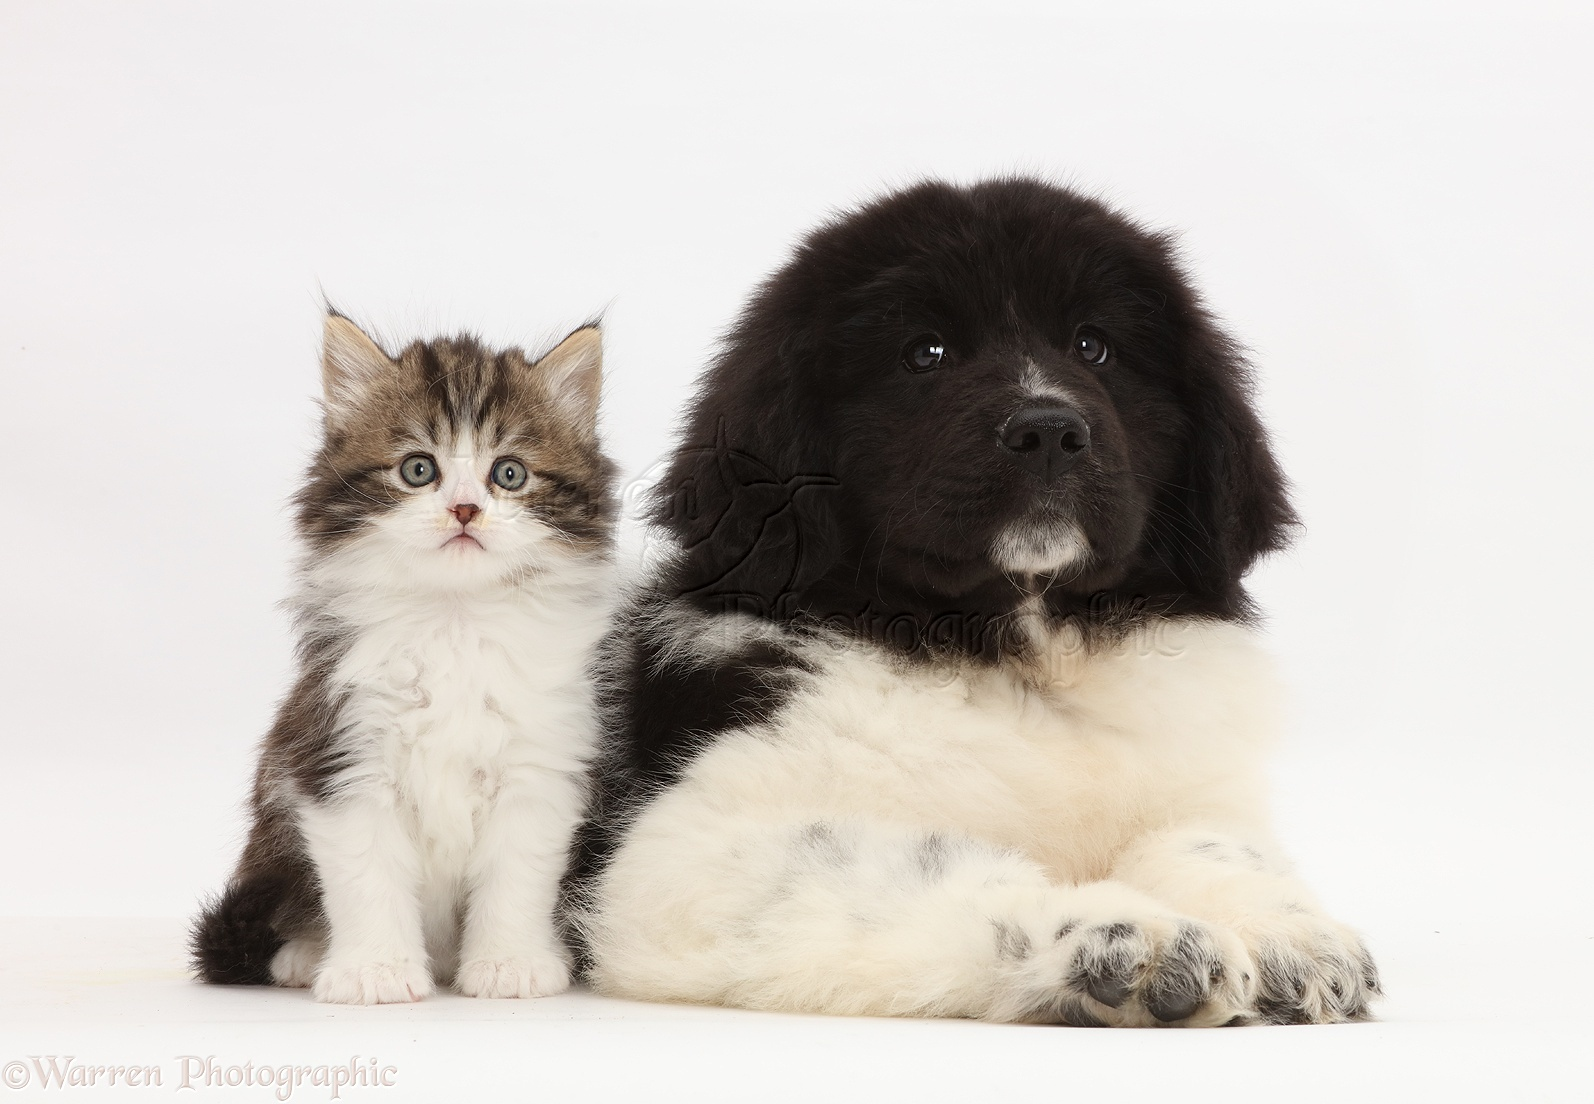 Pets Kitten Sitting With Newfoundland Puppy Photo Wp44634